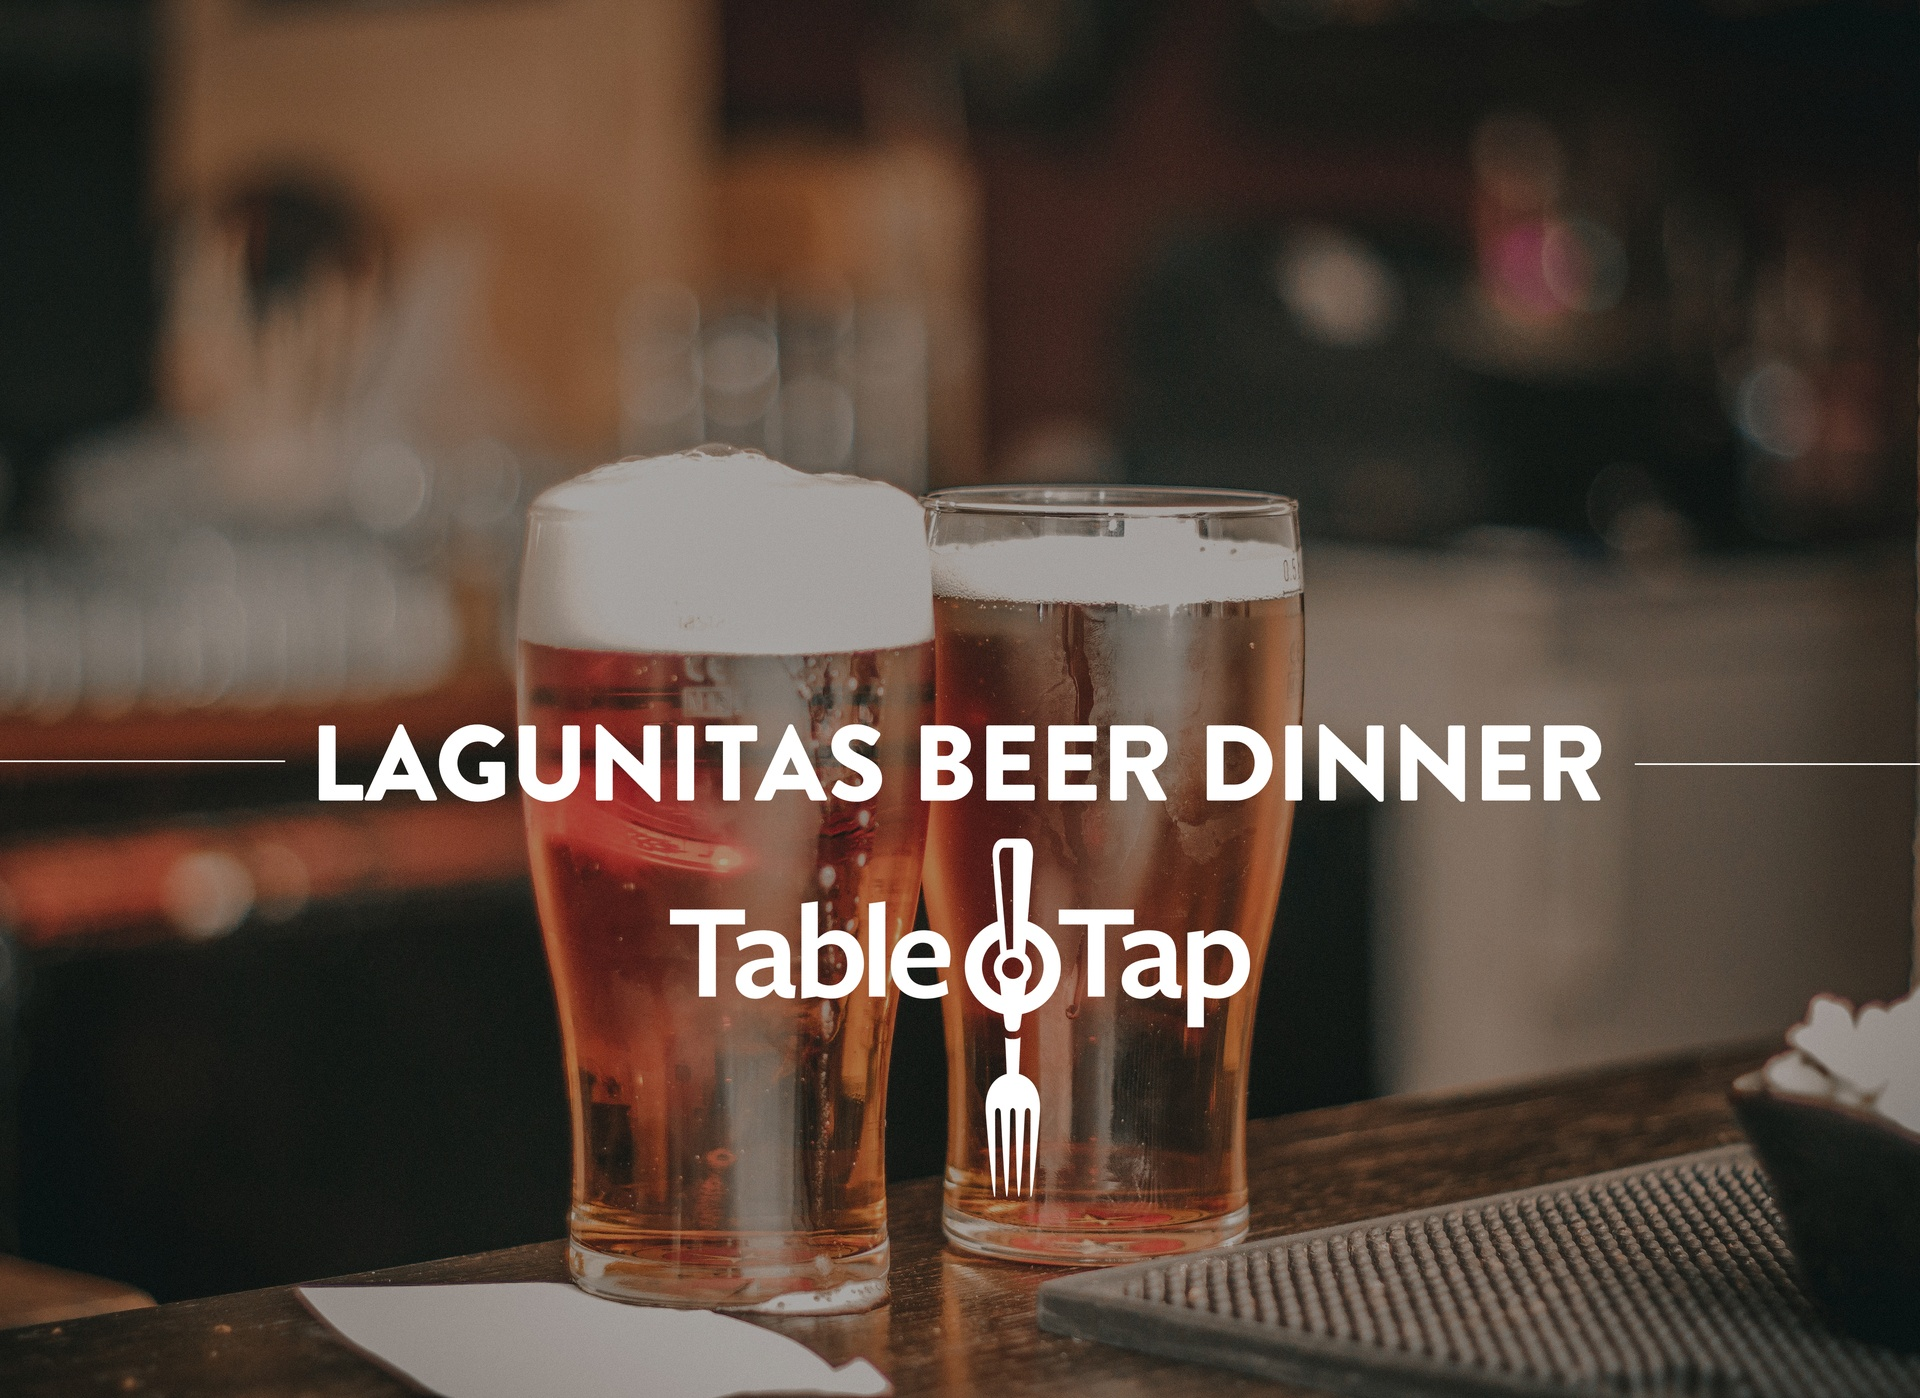 Lagunitas Beer Dinner at Table & Tap